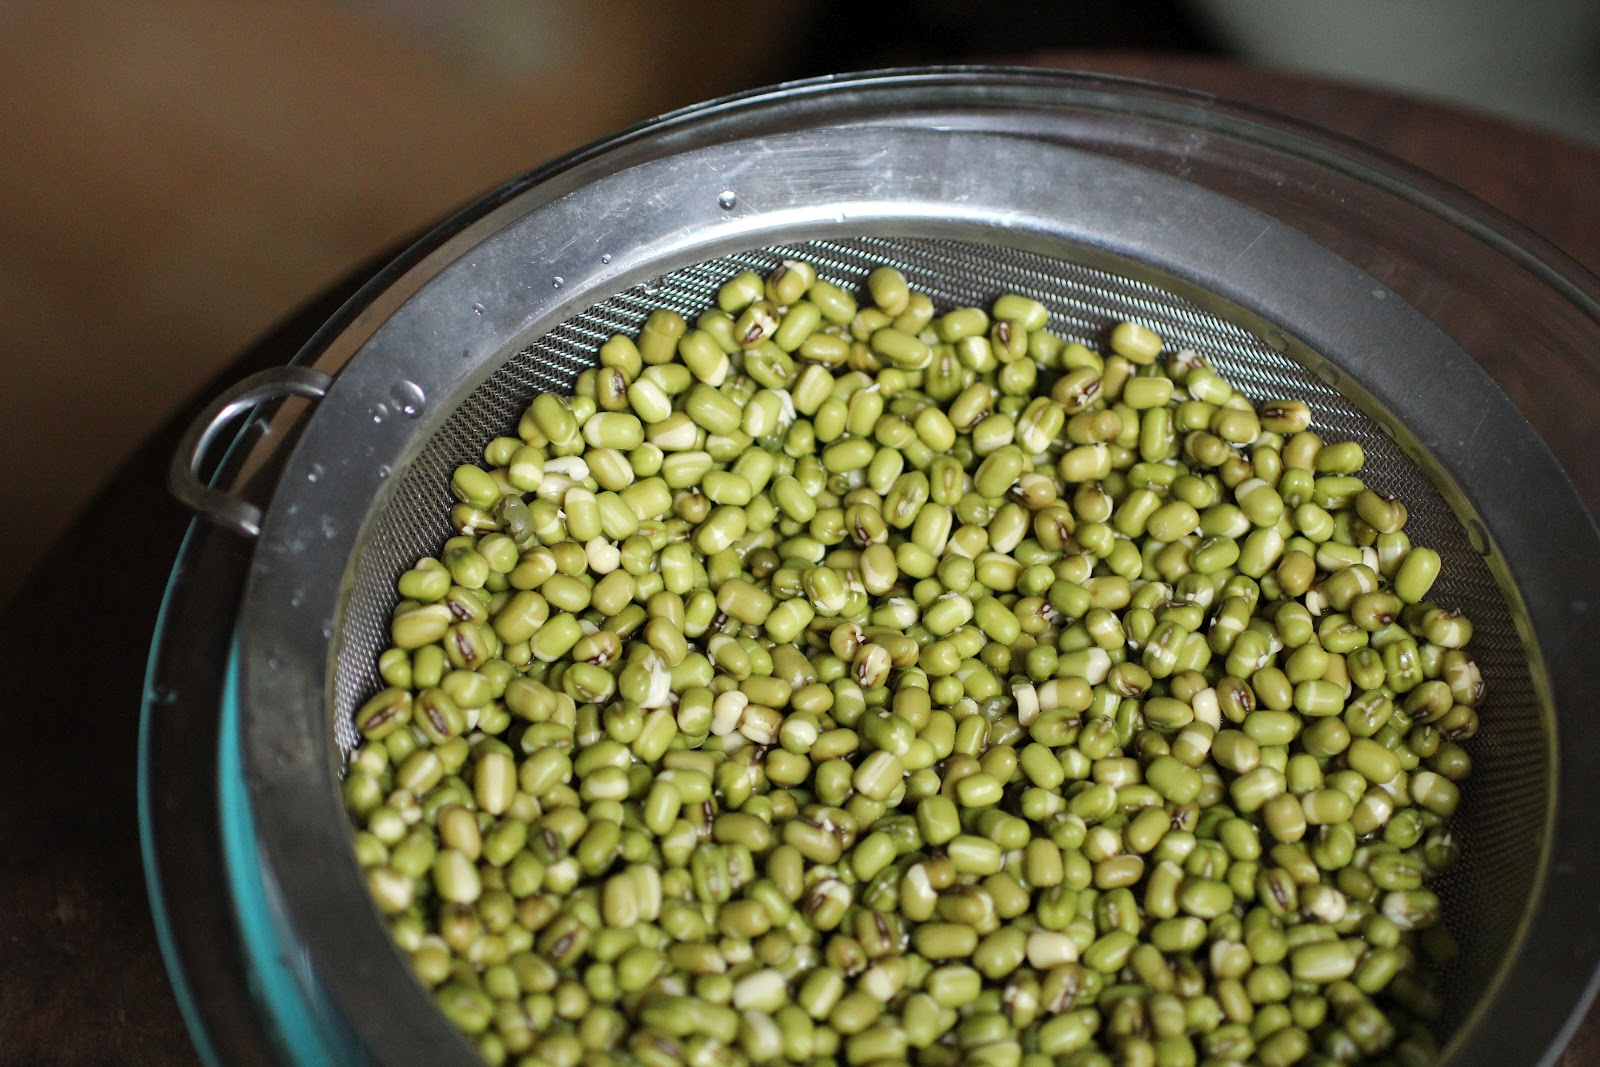 drained moong dal or mung bean in colander